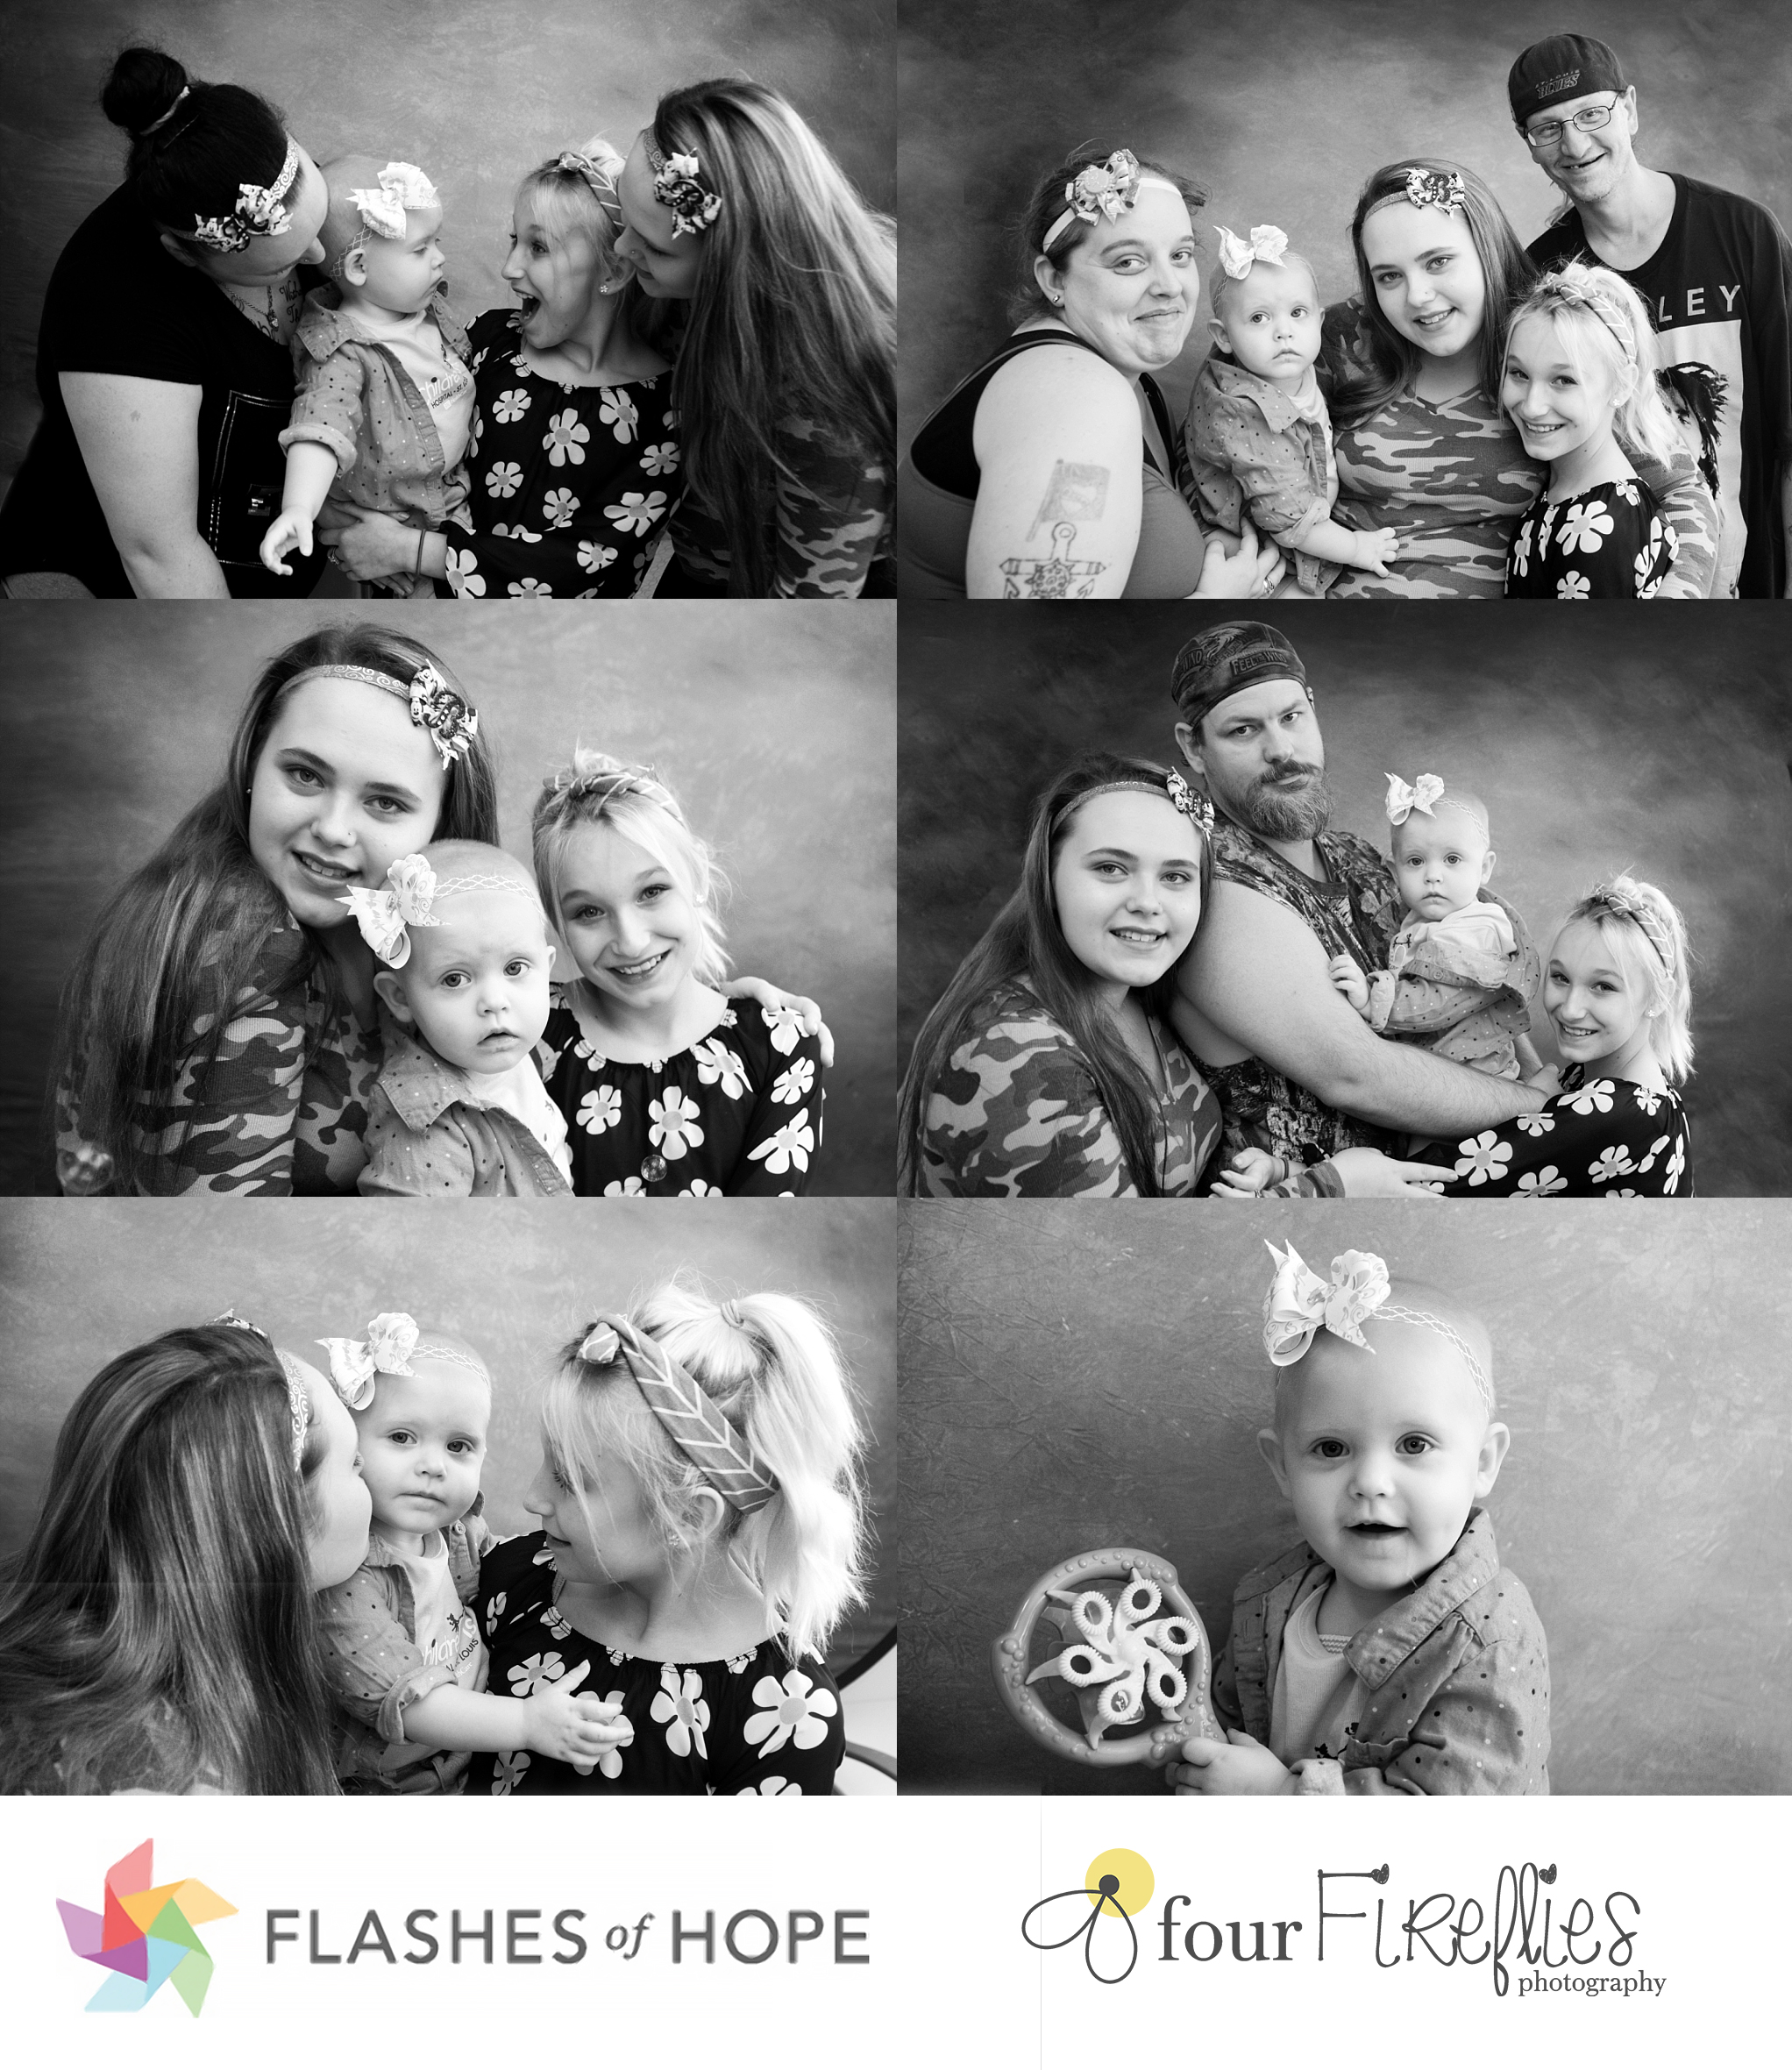 st-louis-photographer-flashes-of-hope-collage-toddler-figiting-cancer-with-family-at-childrens-hospital.jpg